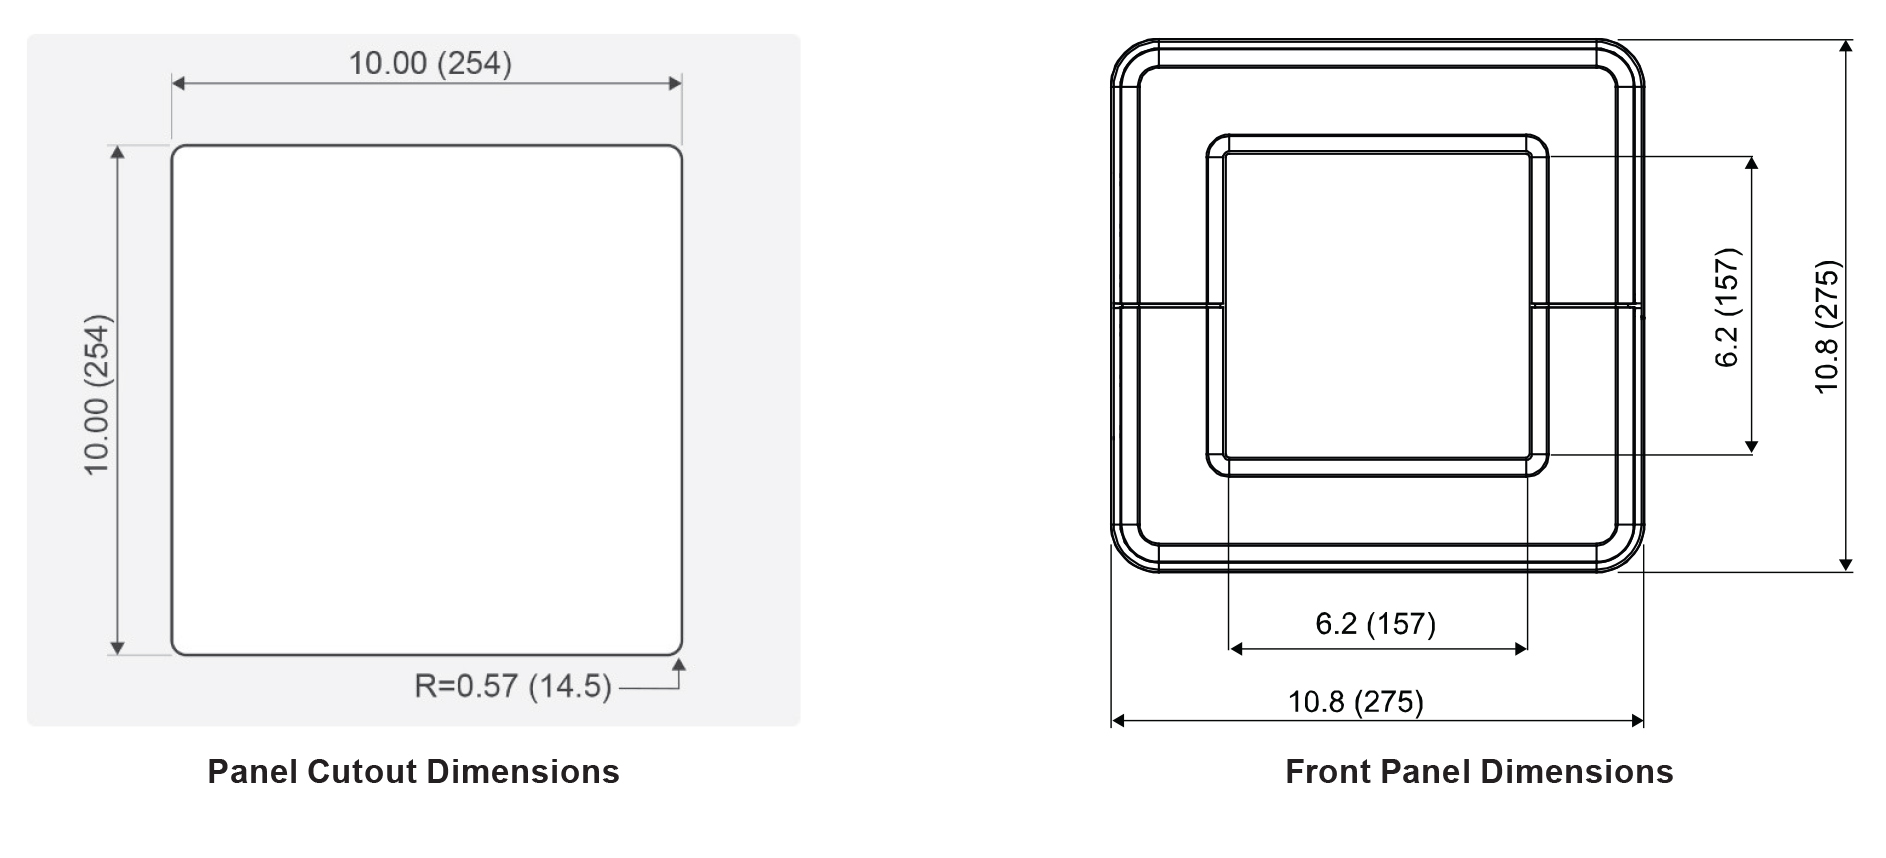 PD9000 Panel Cutout Dimensions and Front Panel Dimensions